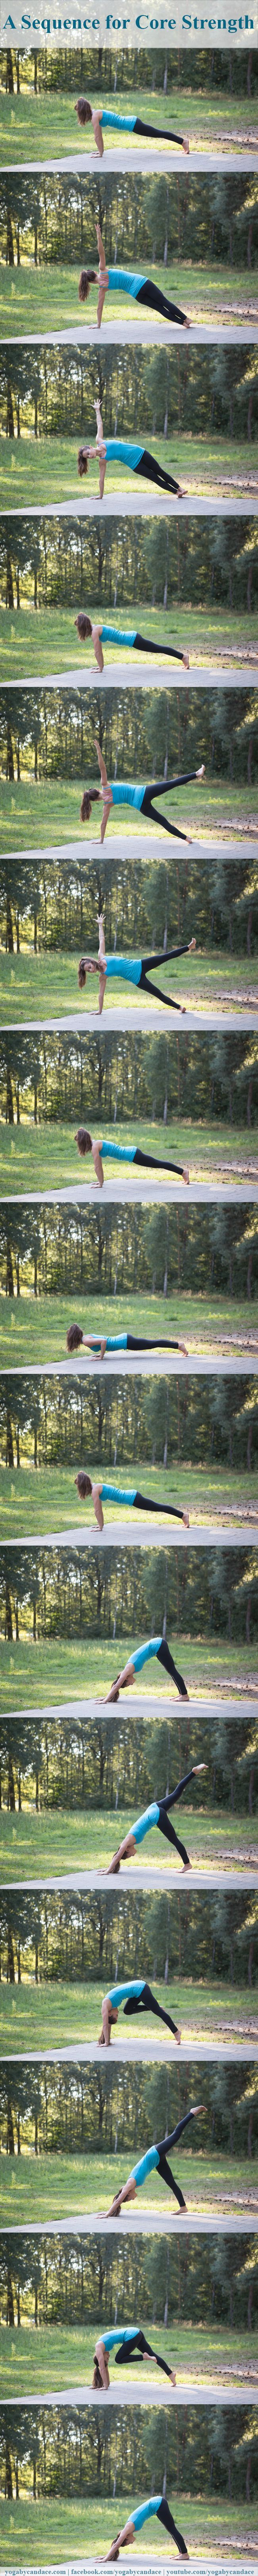 A yoga sequence for core strength you can do right from your home.Do it twice threw - 3-7 breathes each posture... definitely felt it!